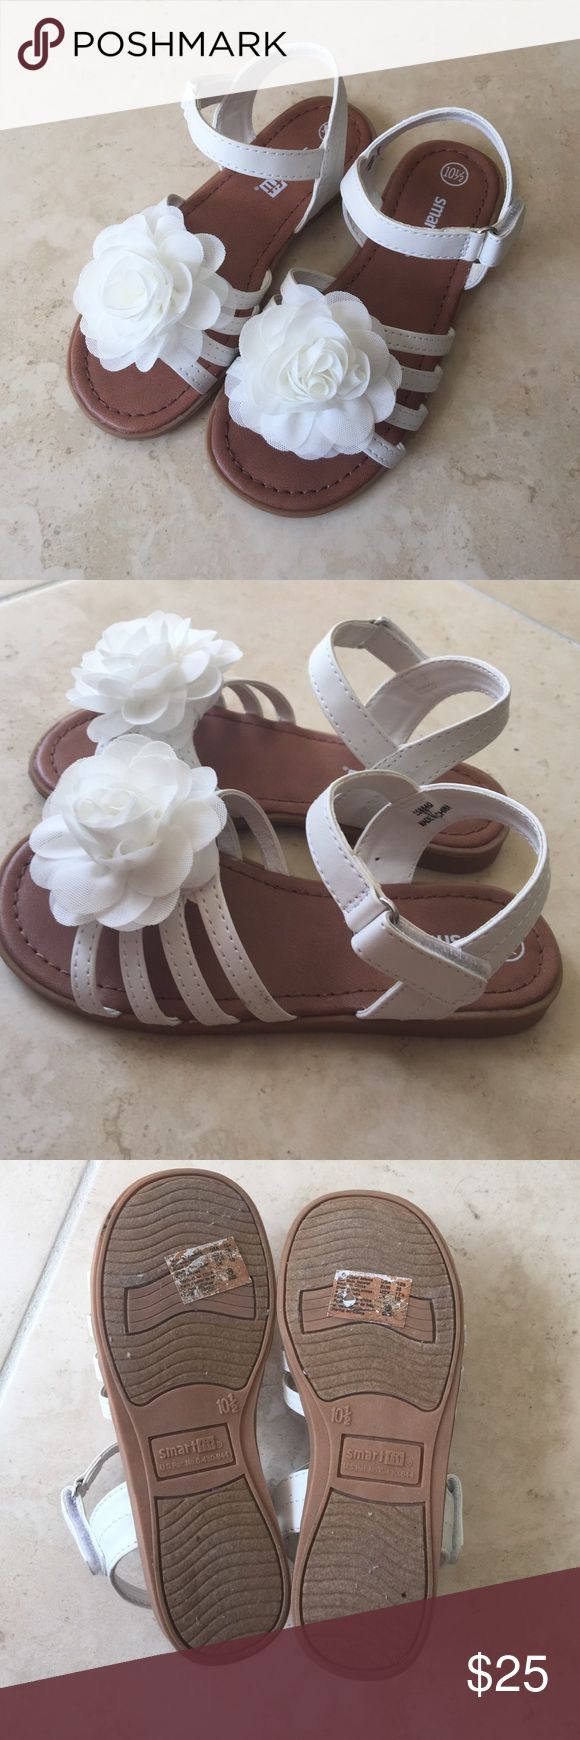 Pretty sandal - like new!!! Used once! Perfect condition!!! Shoes Sandals & Flip Flops